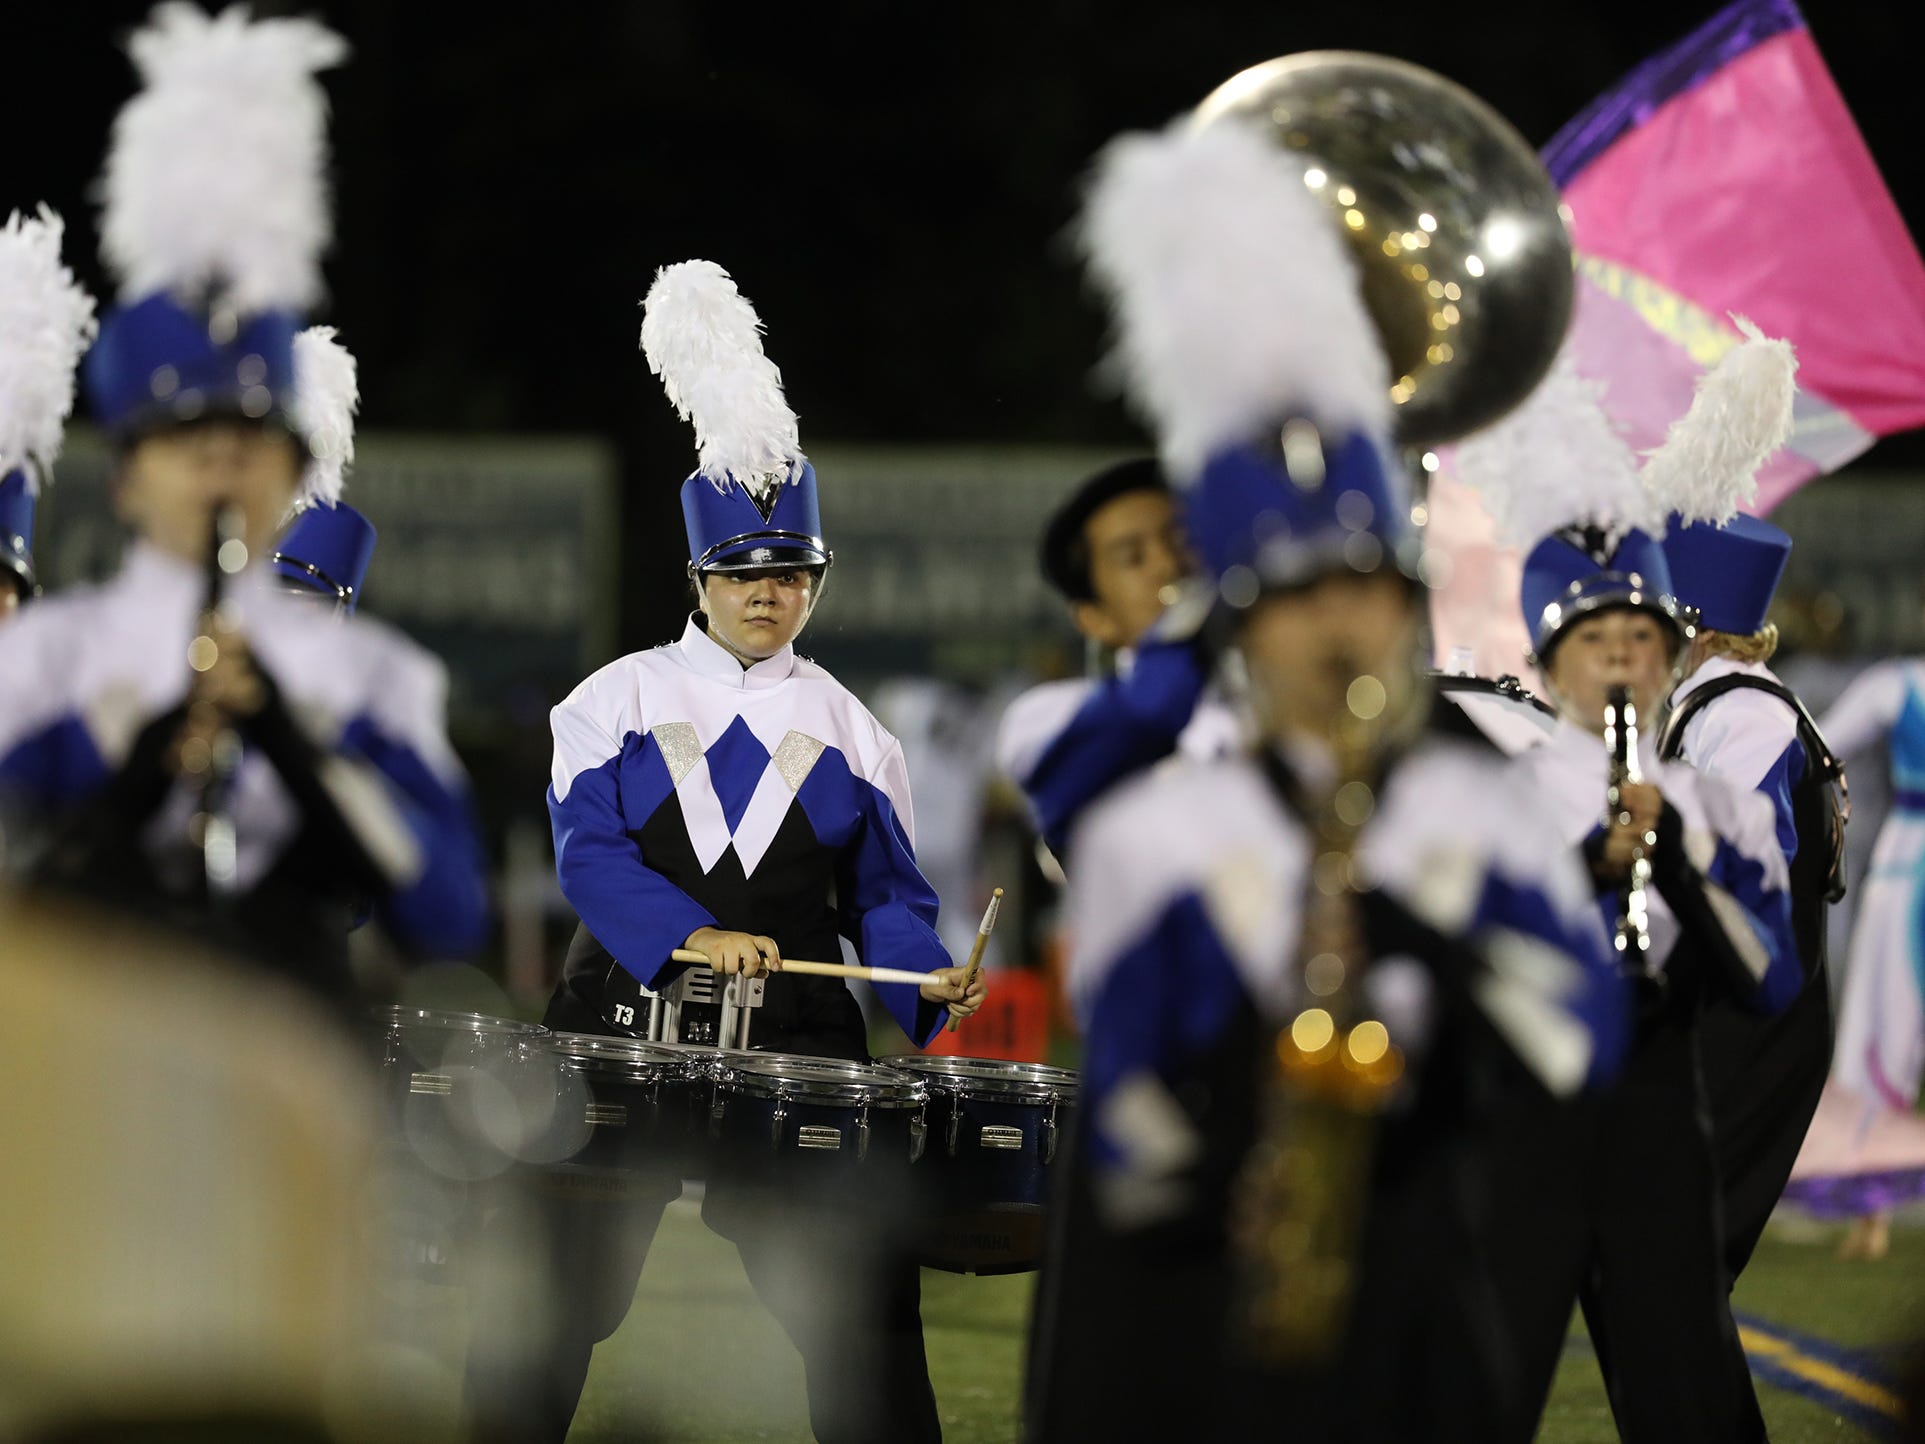 Webster Marching Band is made up of students from both Webster Thomas and Webster Schroeder.